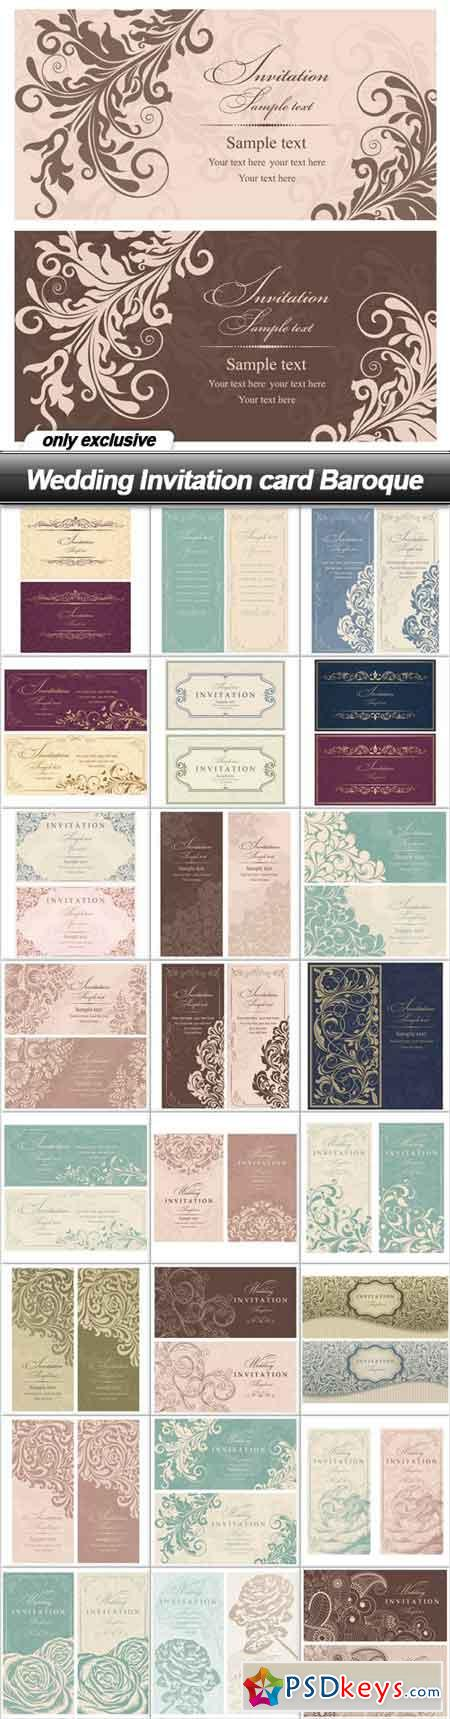 Wedding Invitation Card Baroque 25 Eps Free Download